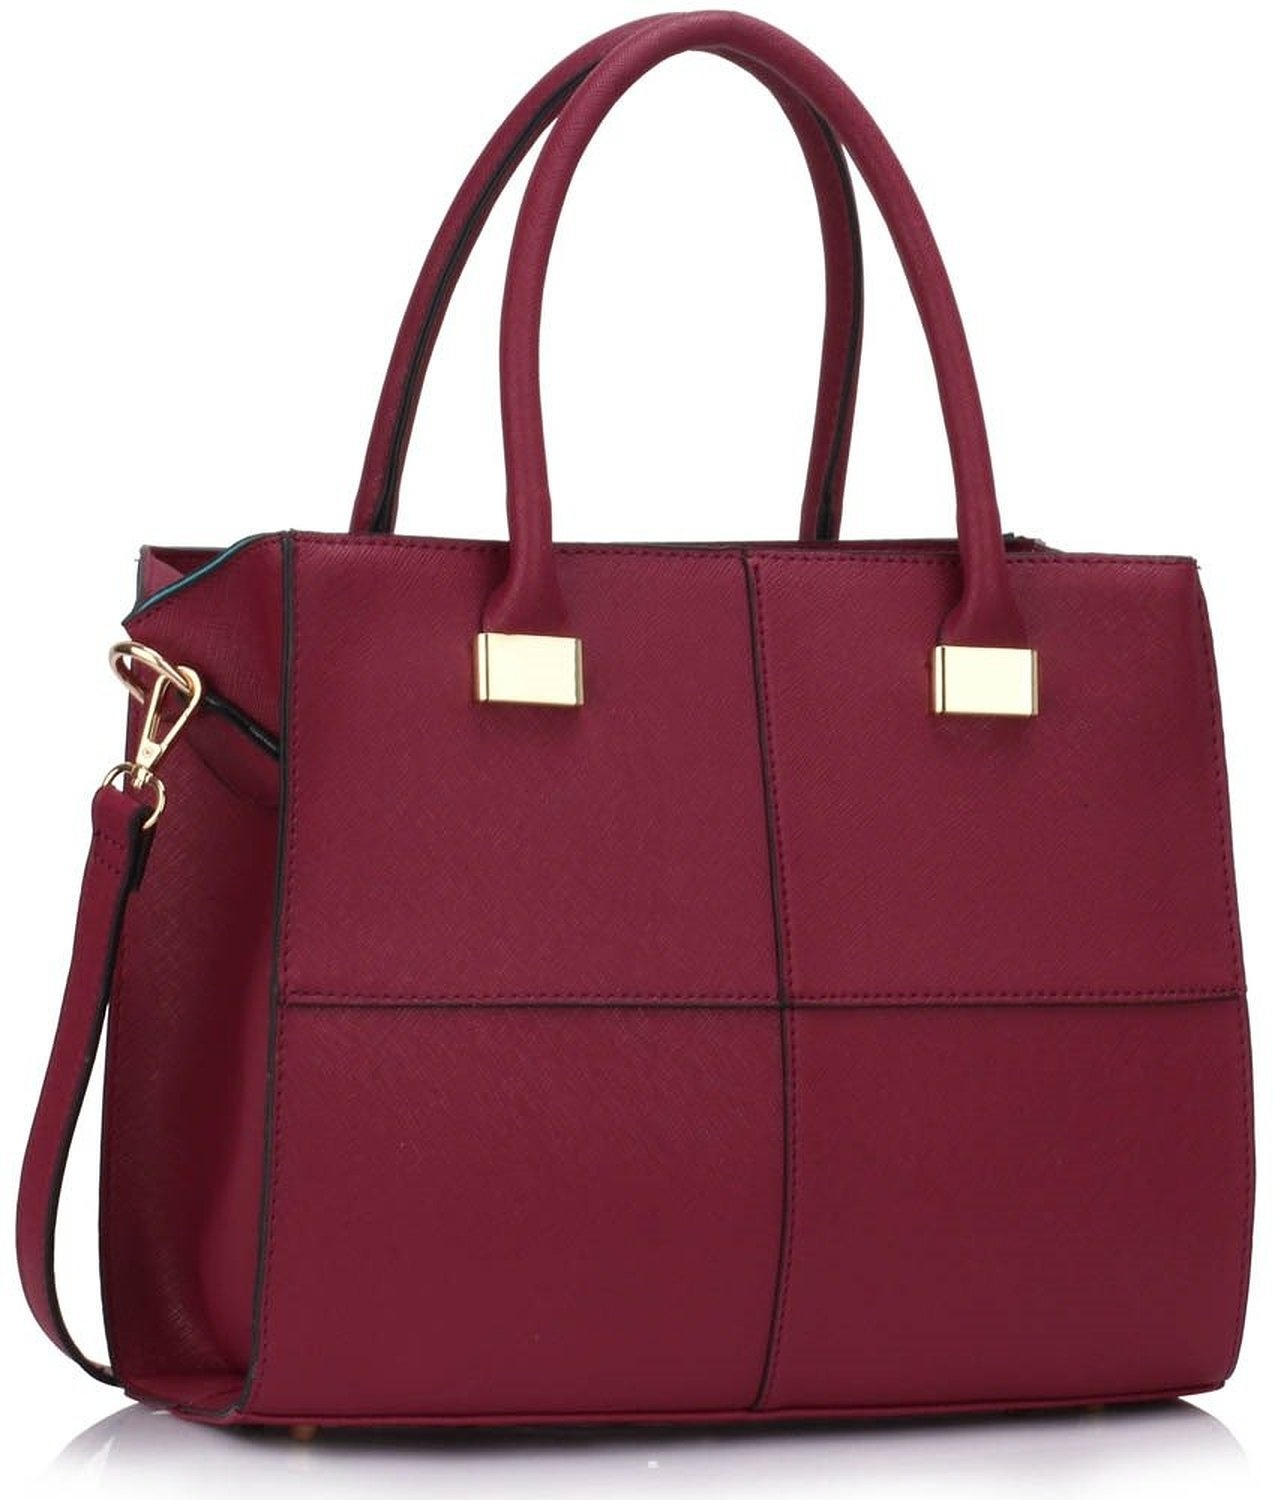 a950be12c05d Ladies Women s Fashion Quality Faux Leather Bags Handbags Chic Designer Bag  LS00153M by Fashion Only UK - Shop Online for Bags in New Zealand